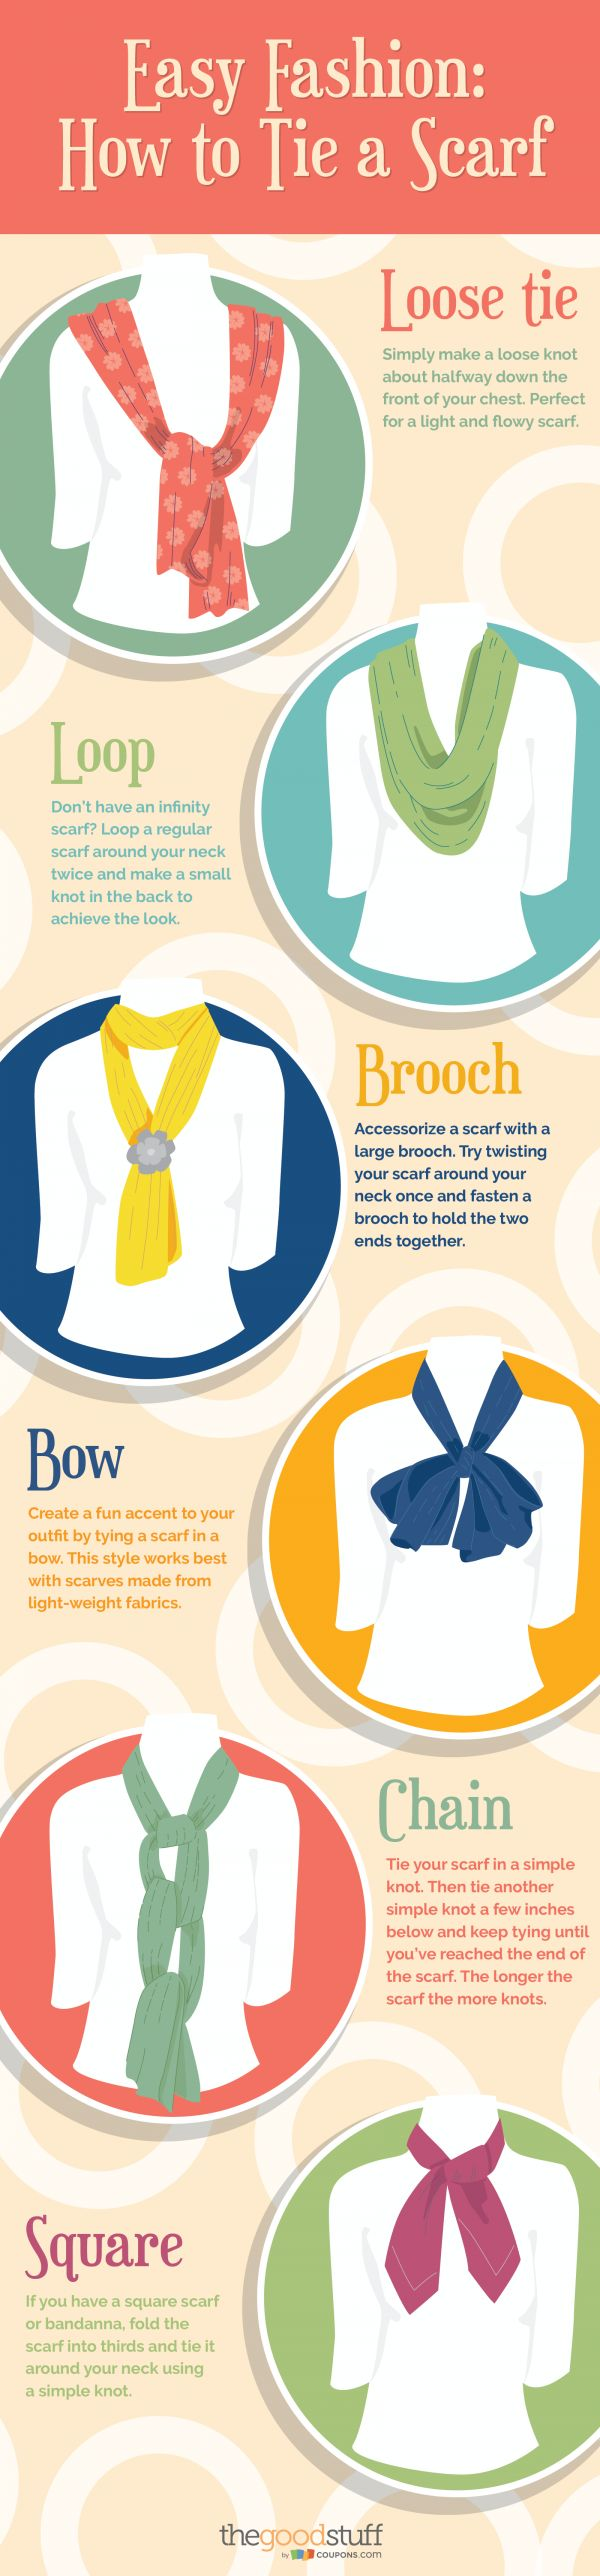 Add a scarf to your spring outfits. Here are 6 easy ways to tie a scarf!